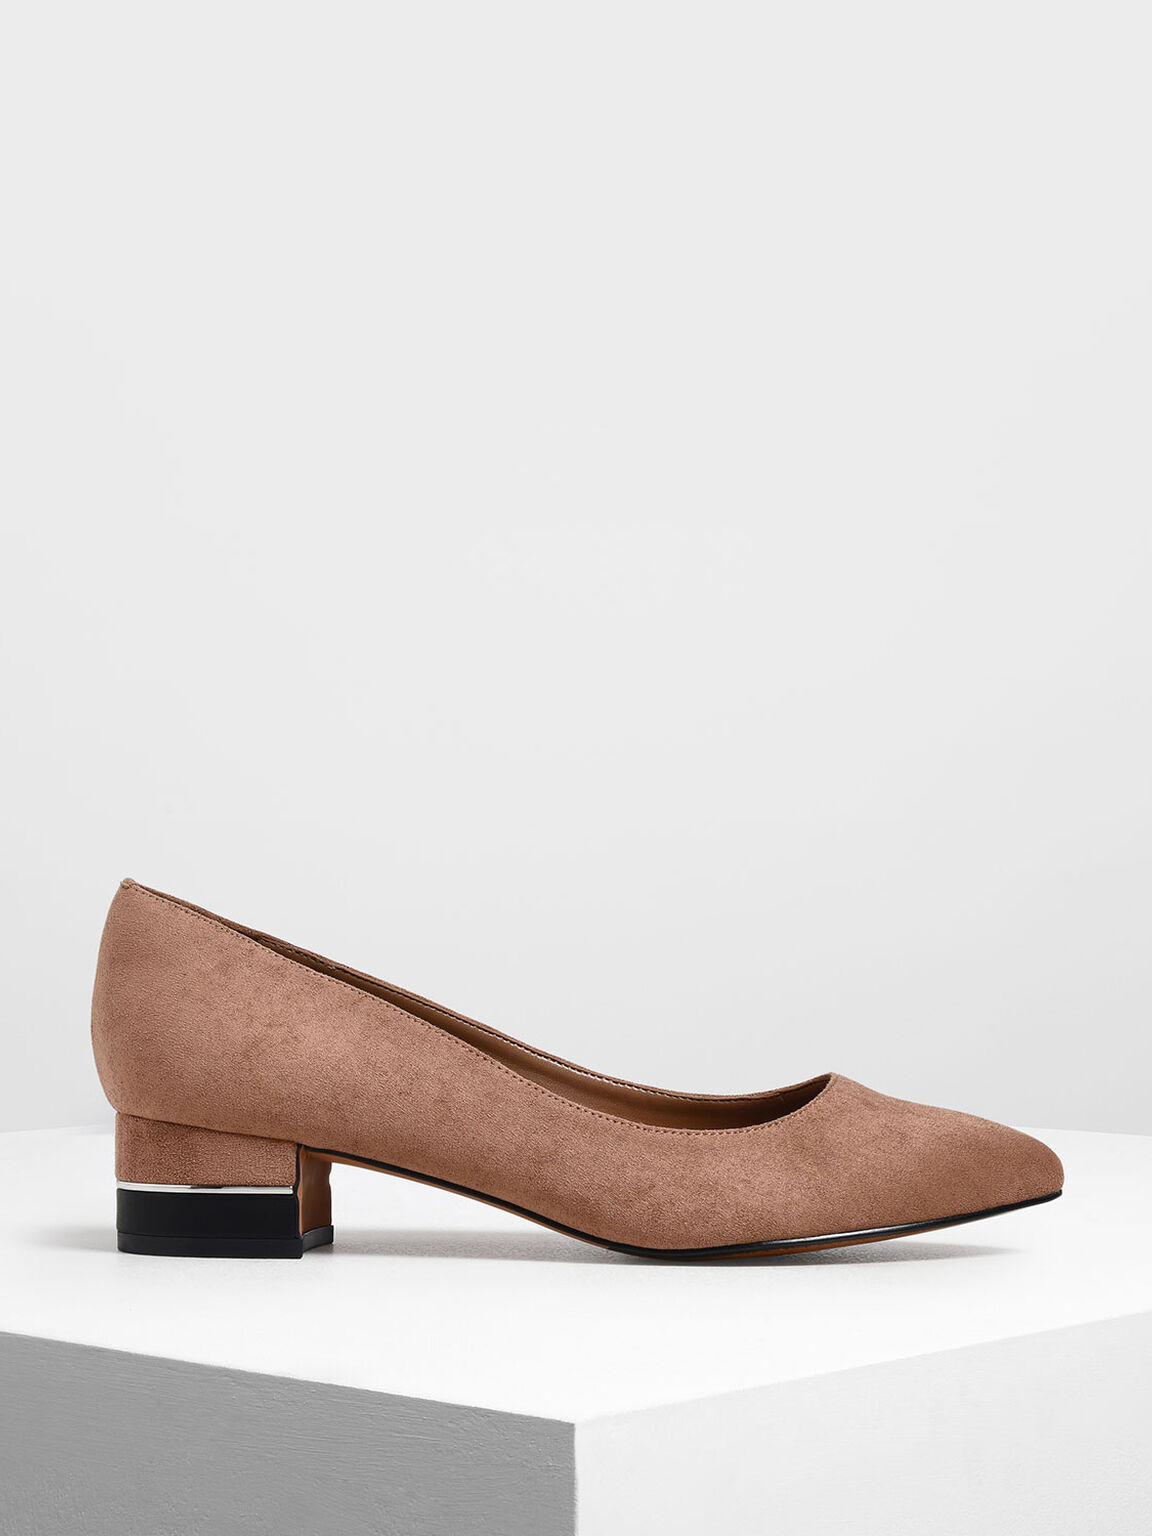 Classic Pointed Toe Pumps, Taupe, hi-res